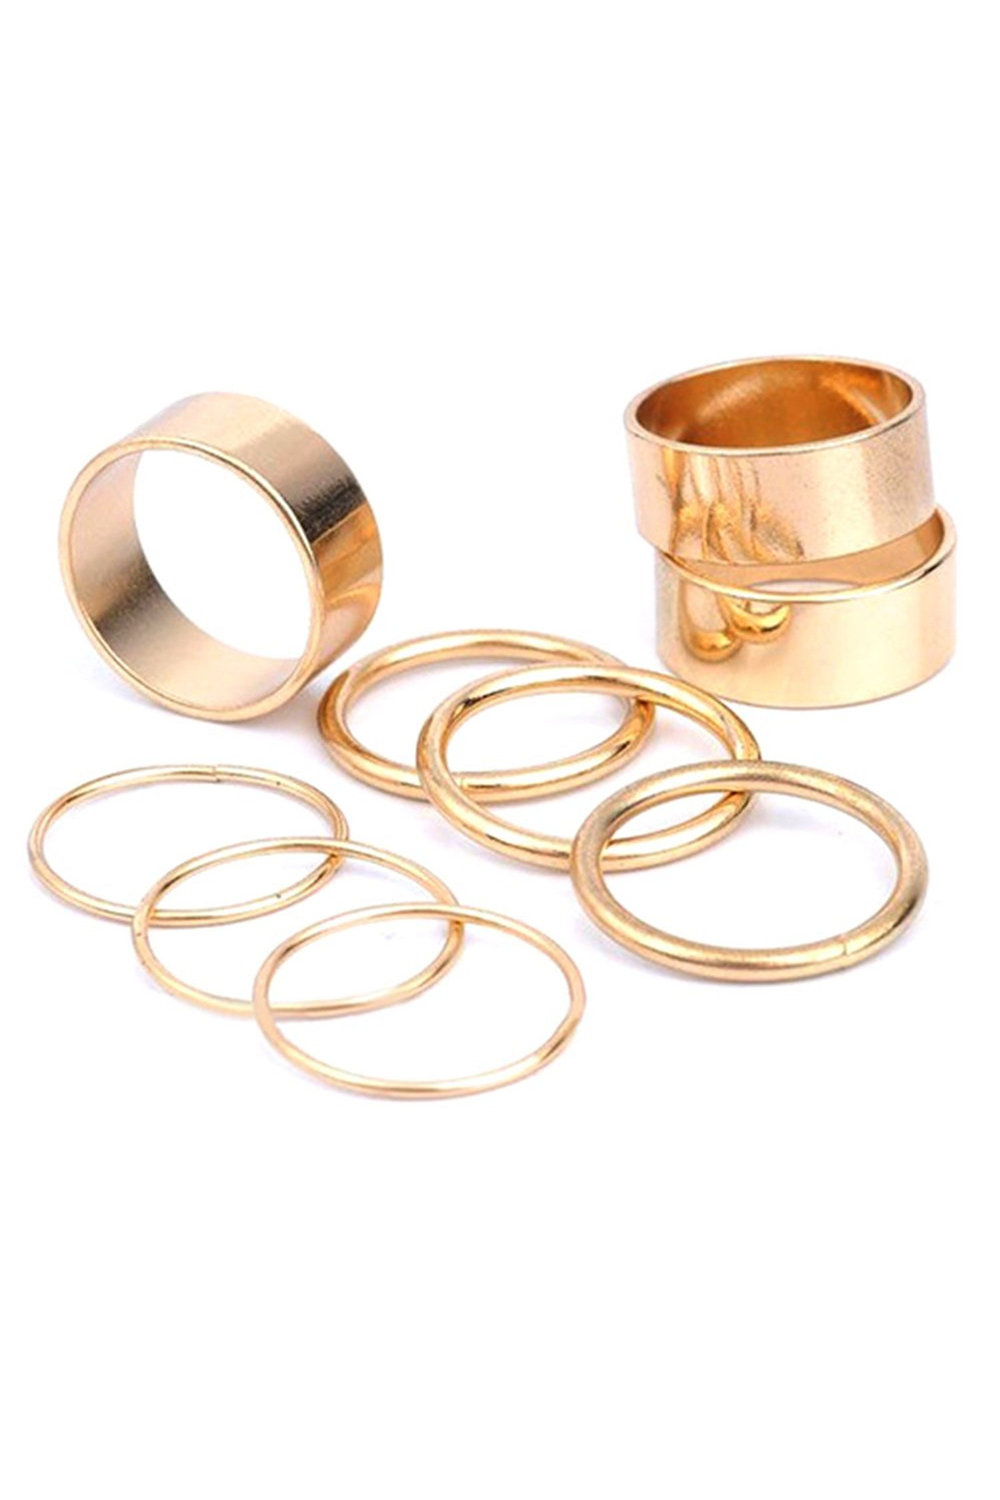 2x 9stk satz gothic punk knoechel finger ring schmuck dekorativ gold et. Black Bedroom Furniture Sets. Home Design Ideas